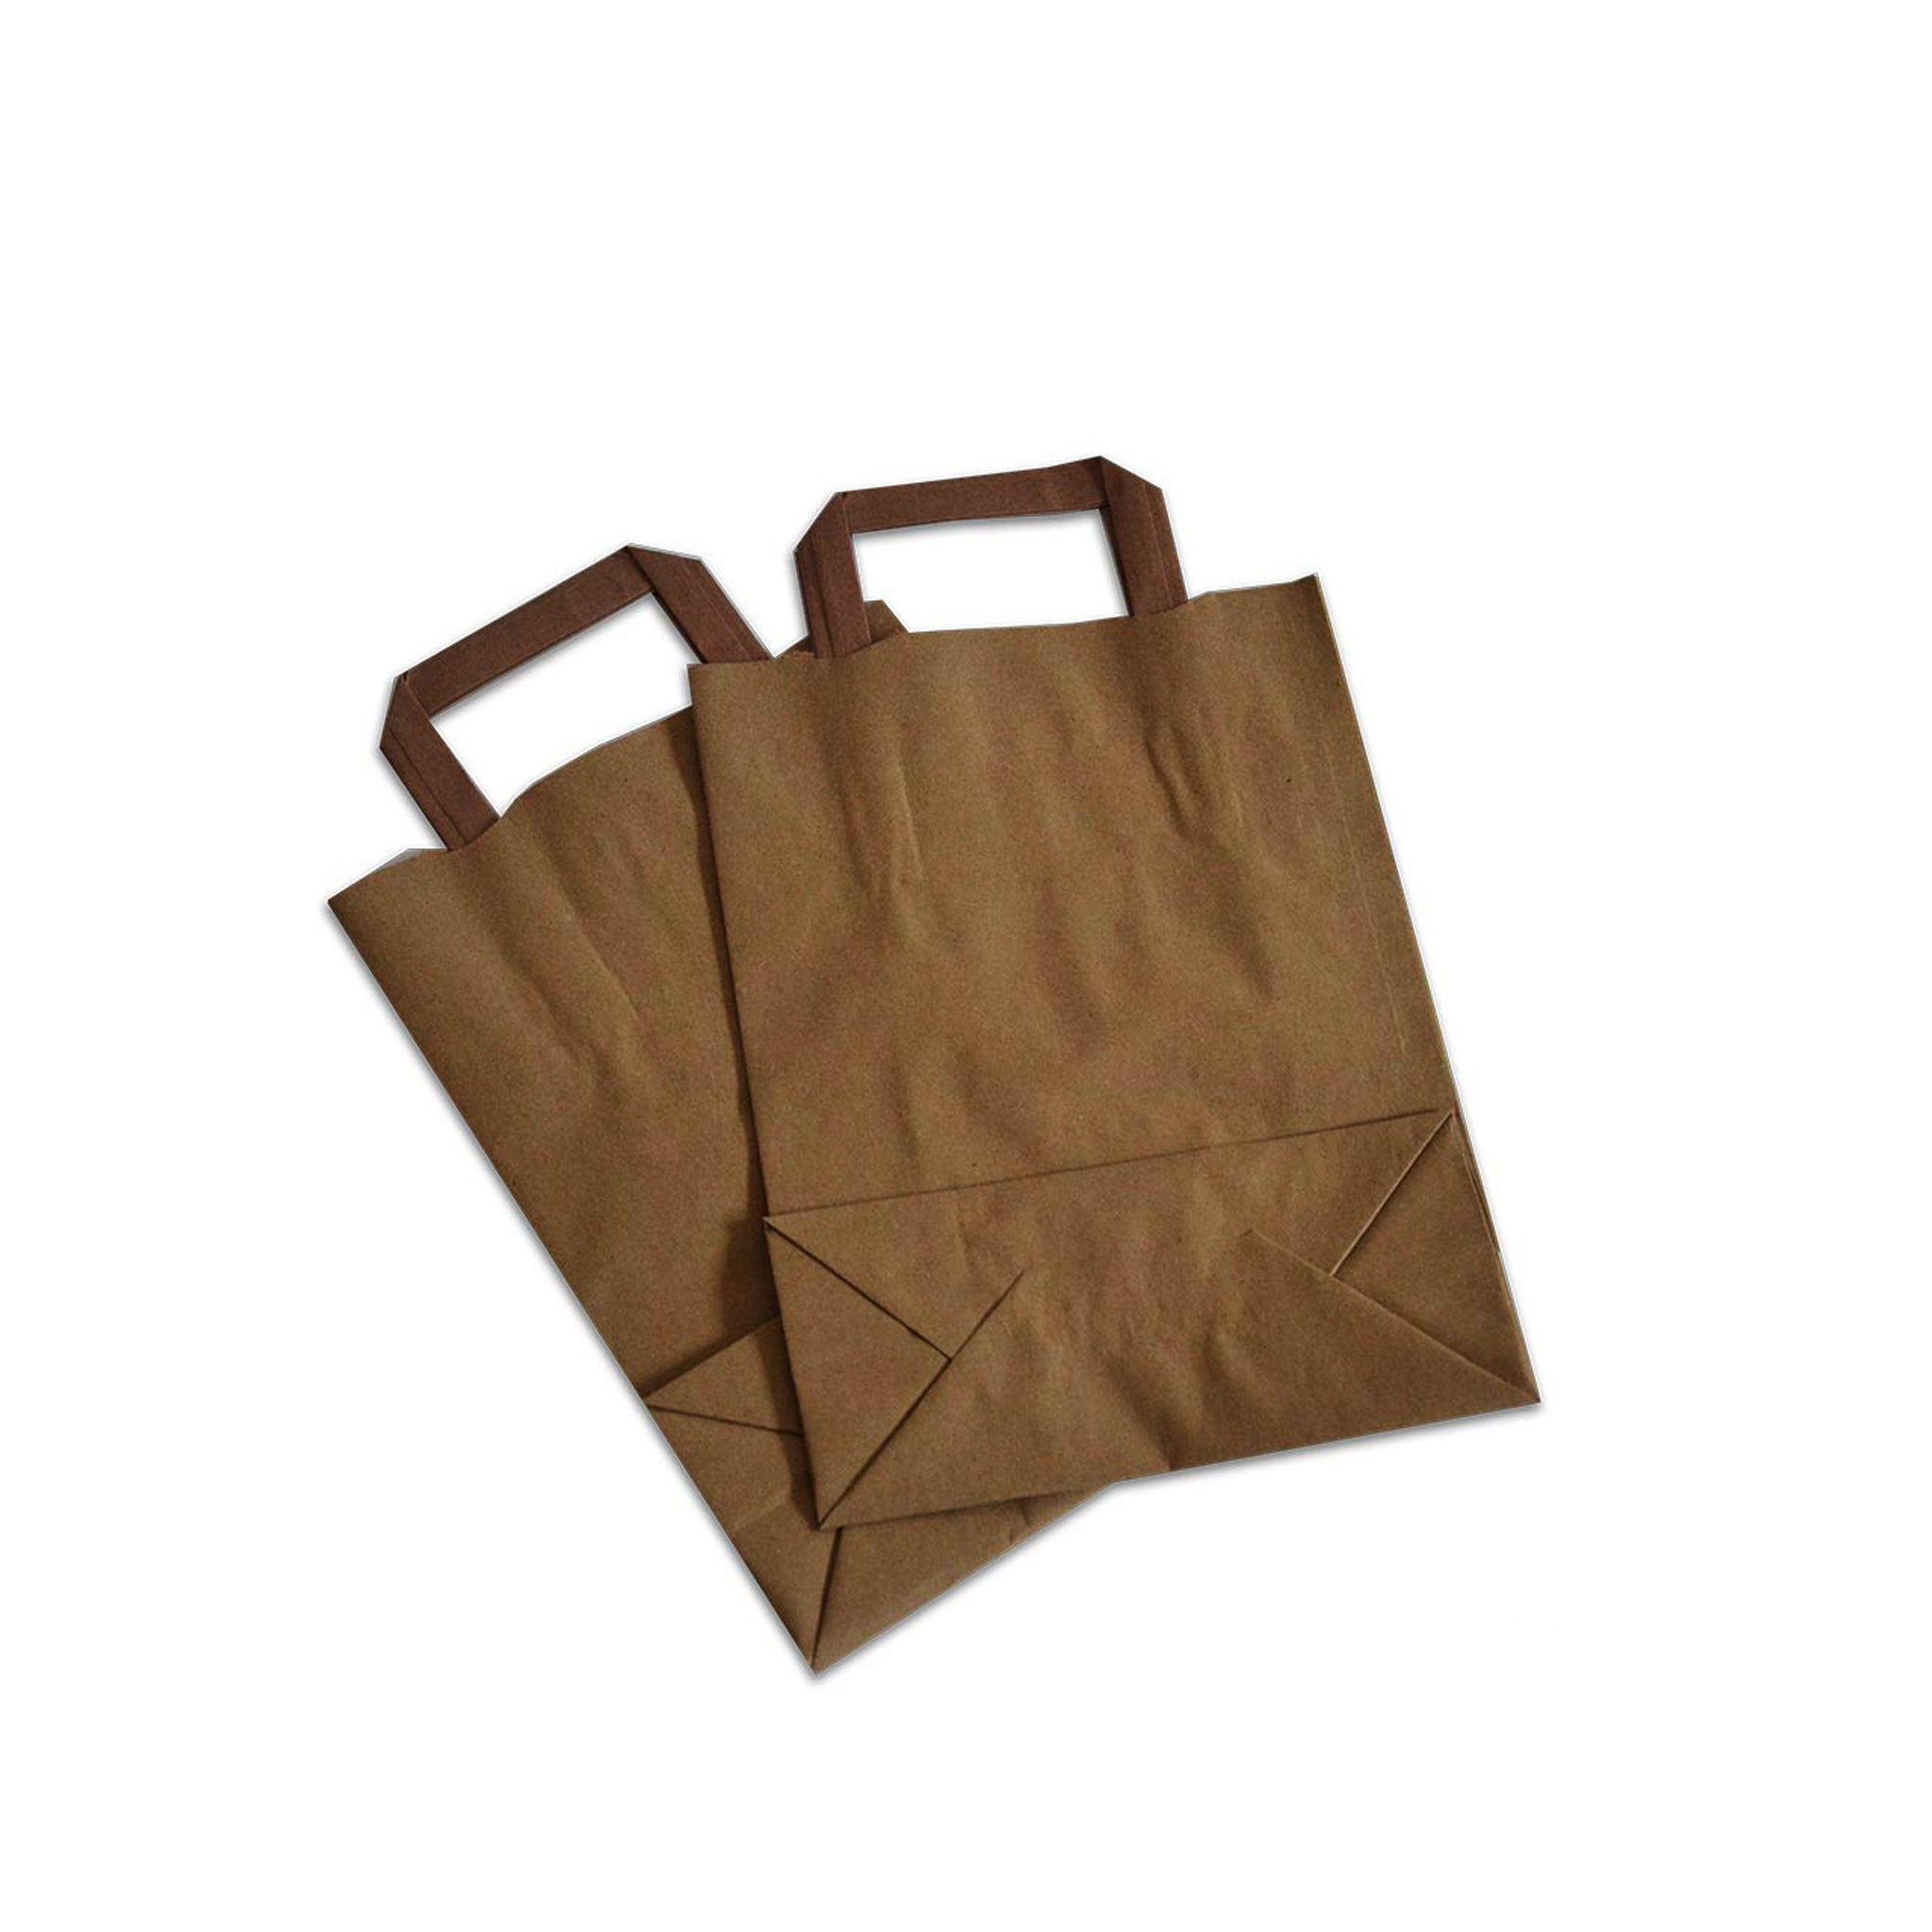 Shopping bags - Fol The Brand Business